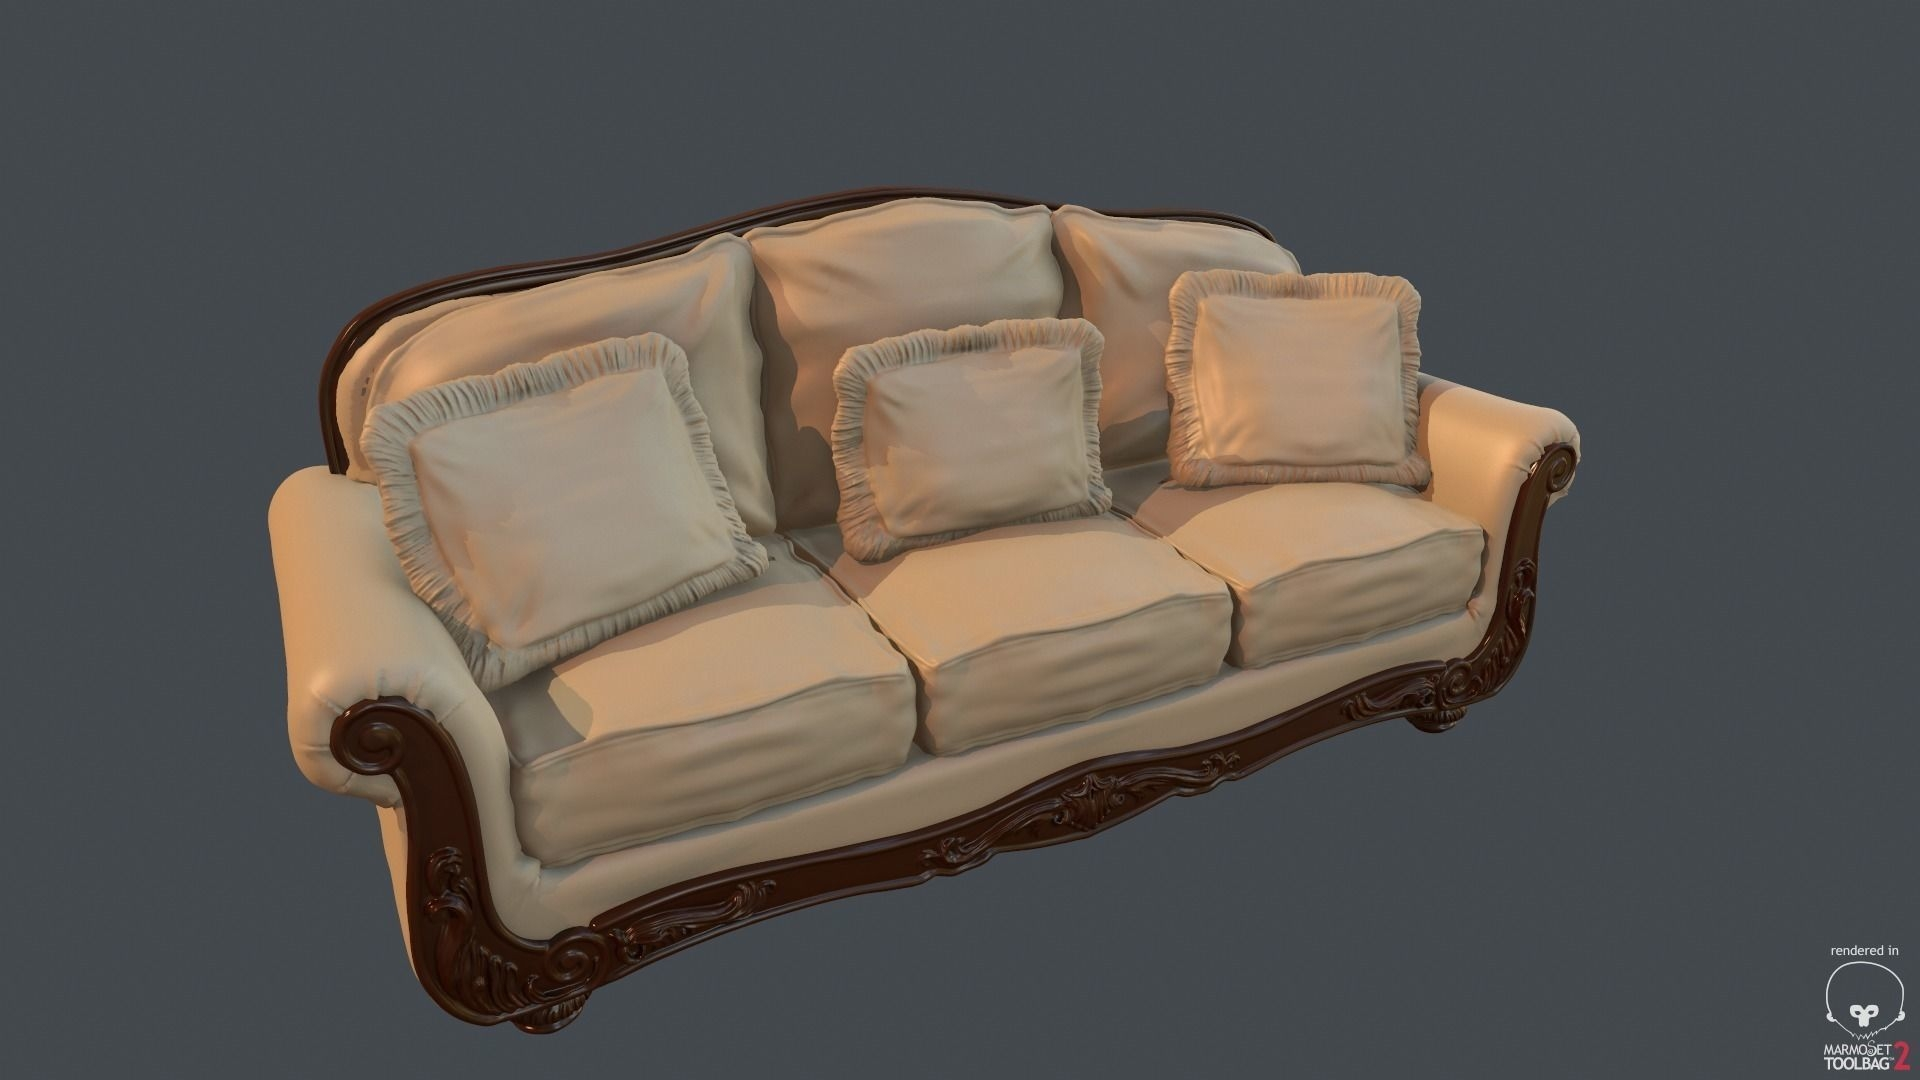 Old Fashioned Sofa 3D Model Obj Fbx Dae Mtl in Old Fashioned Sofas (Image 10 of 30)